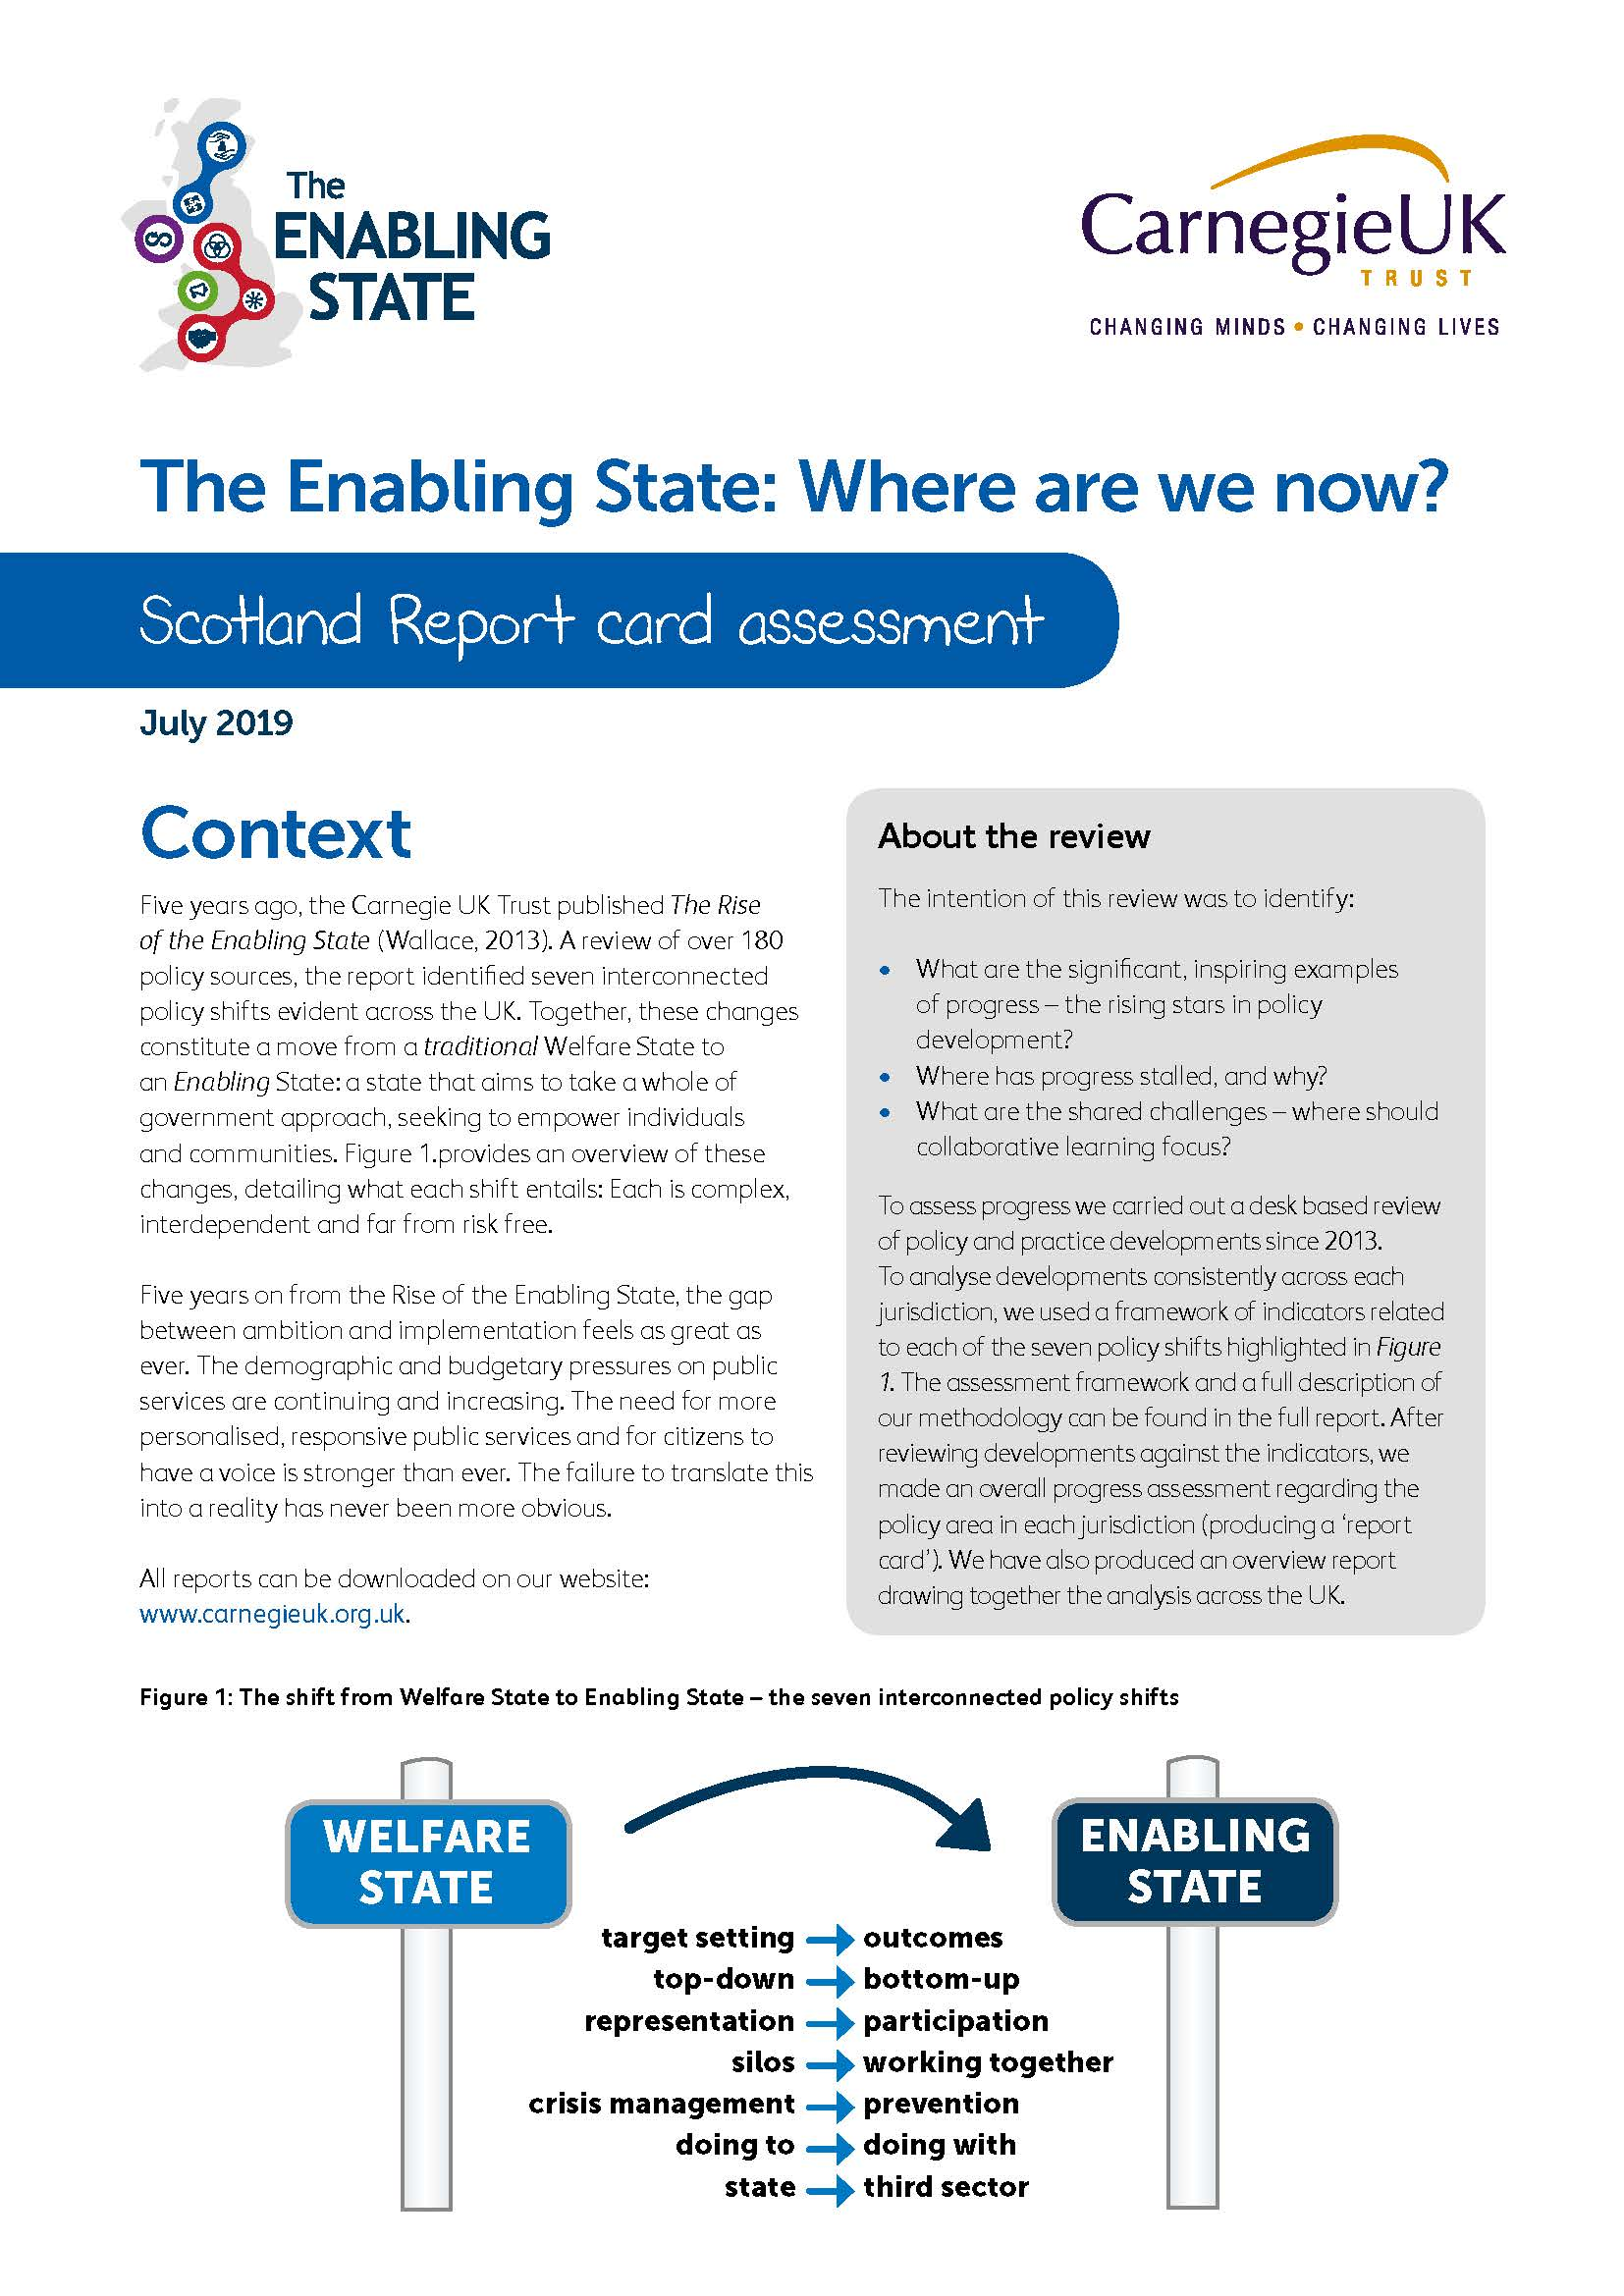 The Enabling State: Where are we now? Scotland Report card assessment